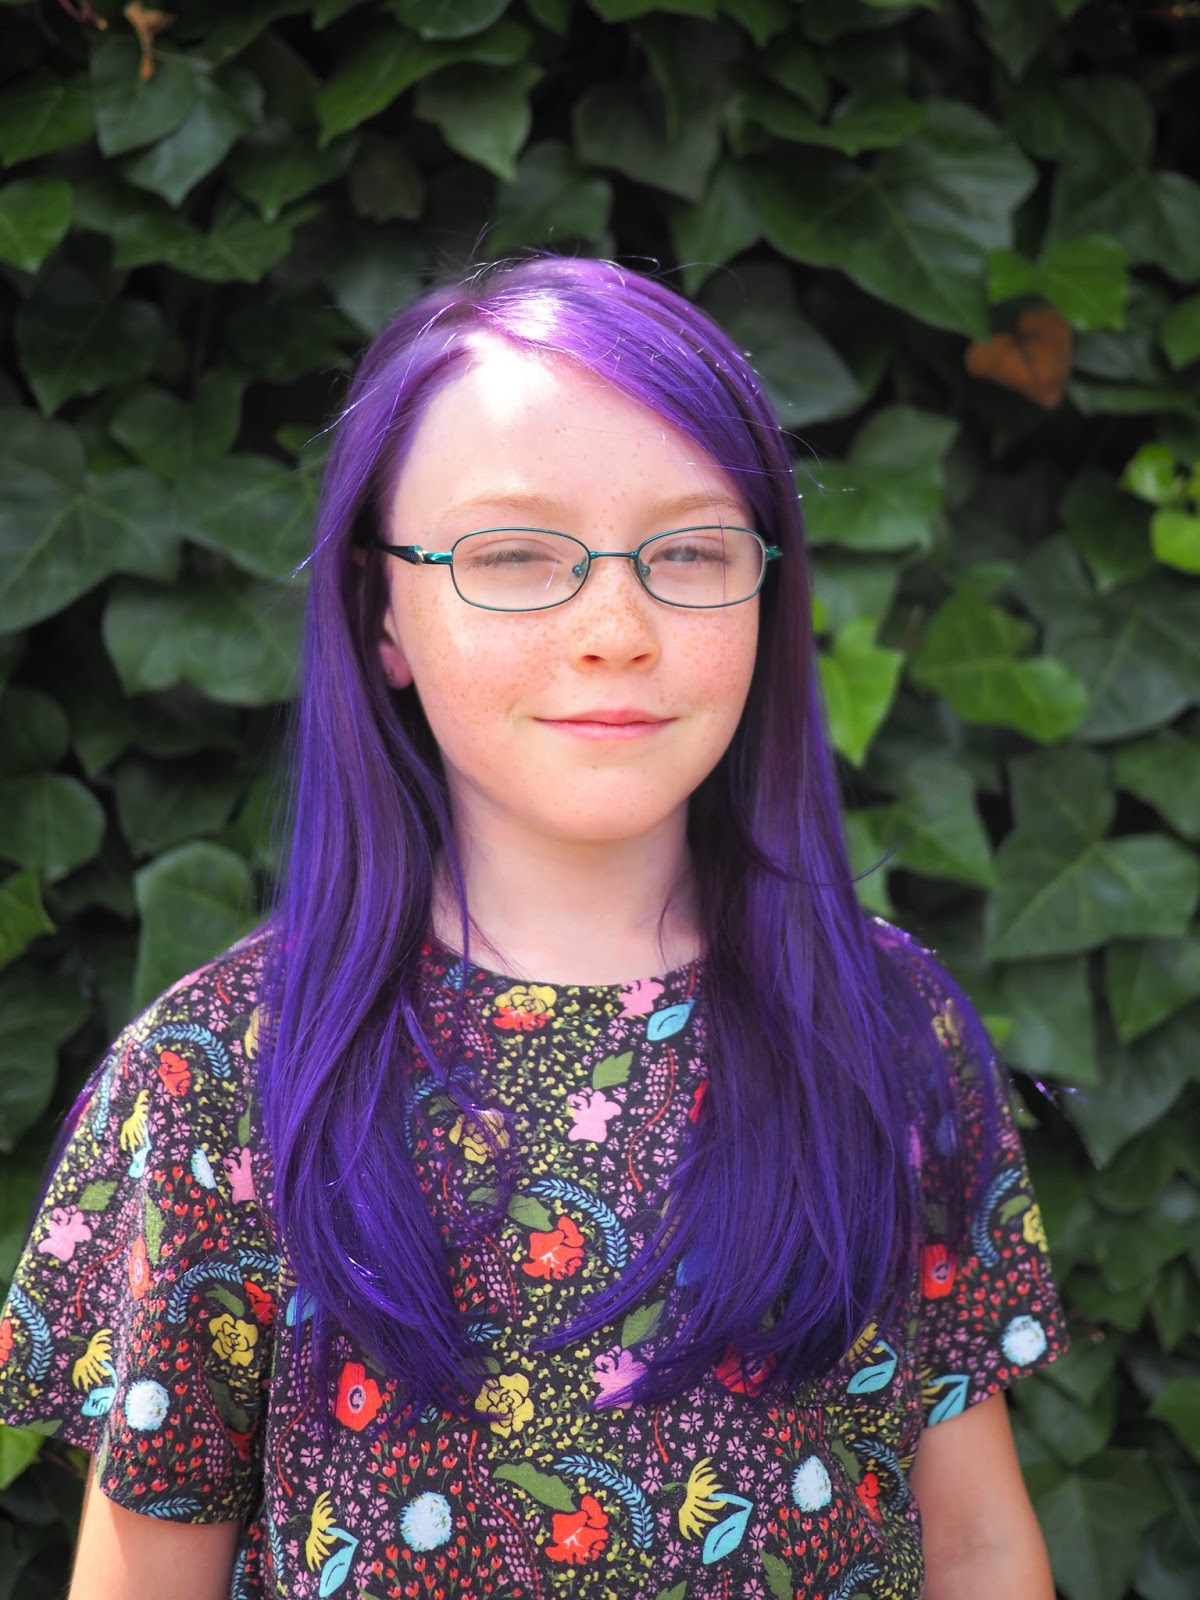 Little Hiccups: Purple Hair